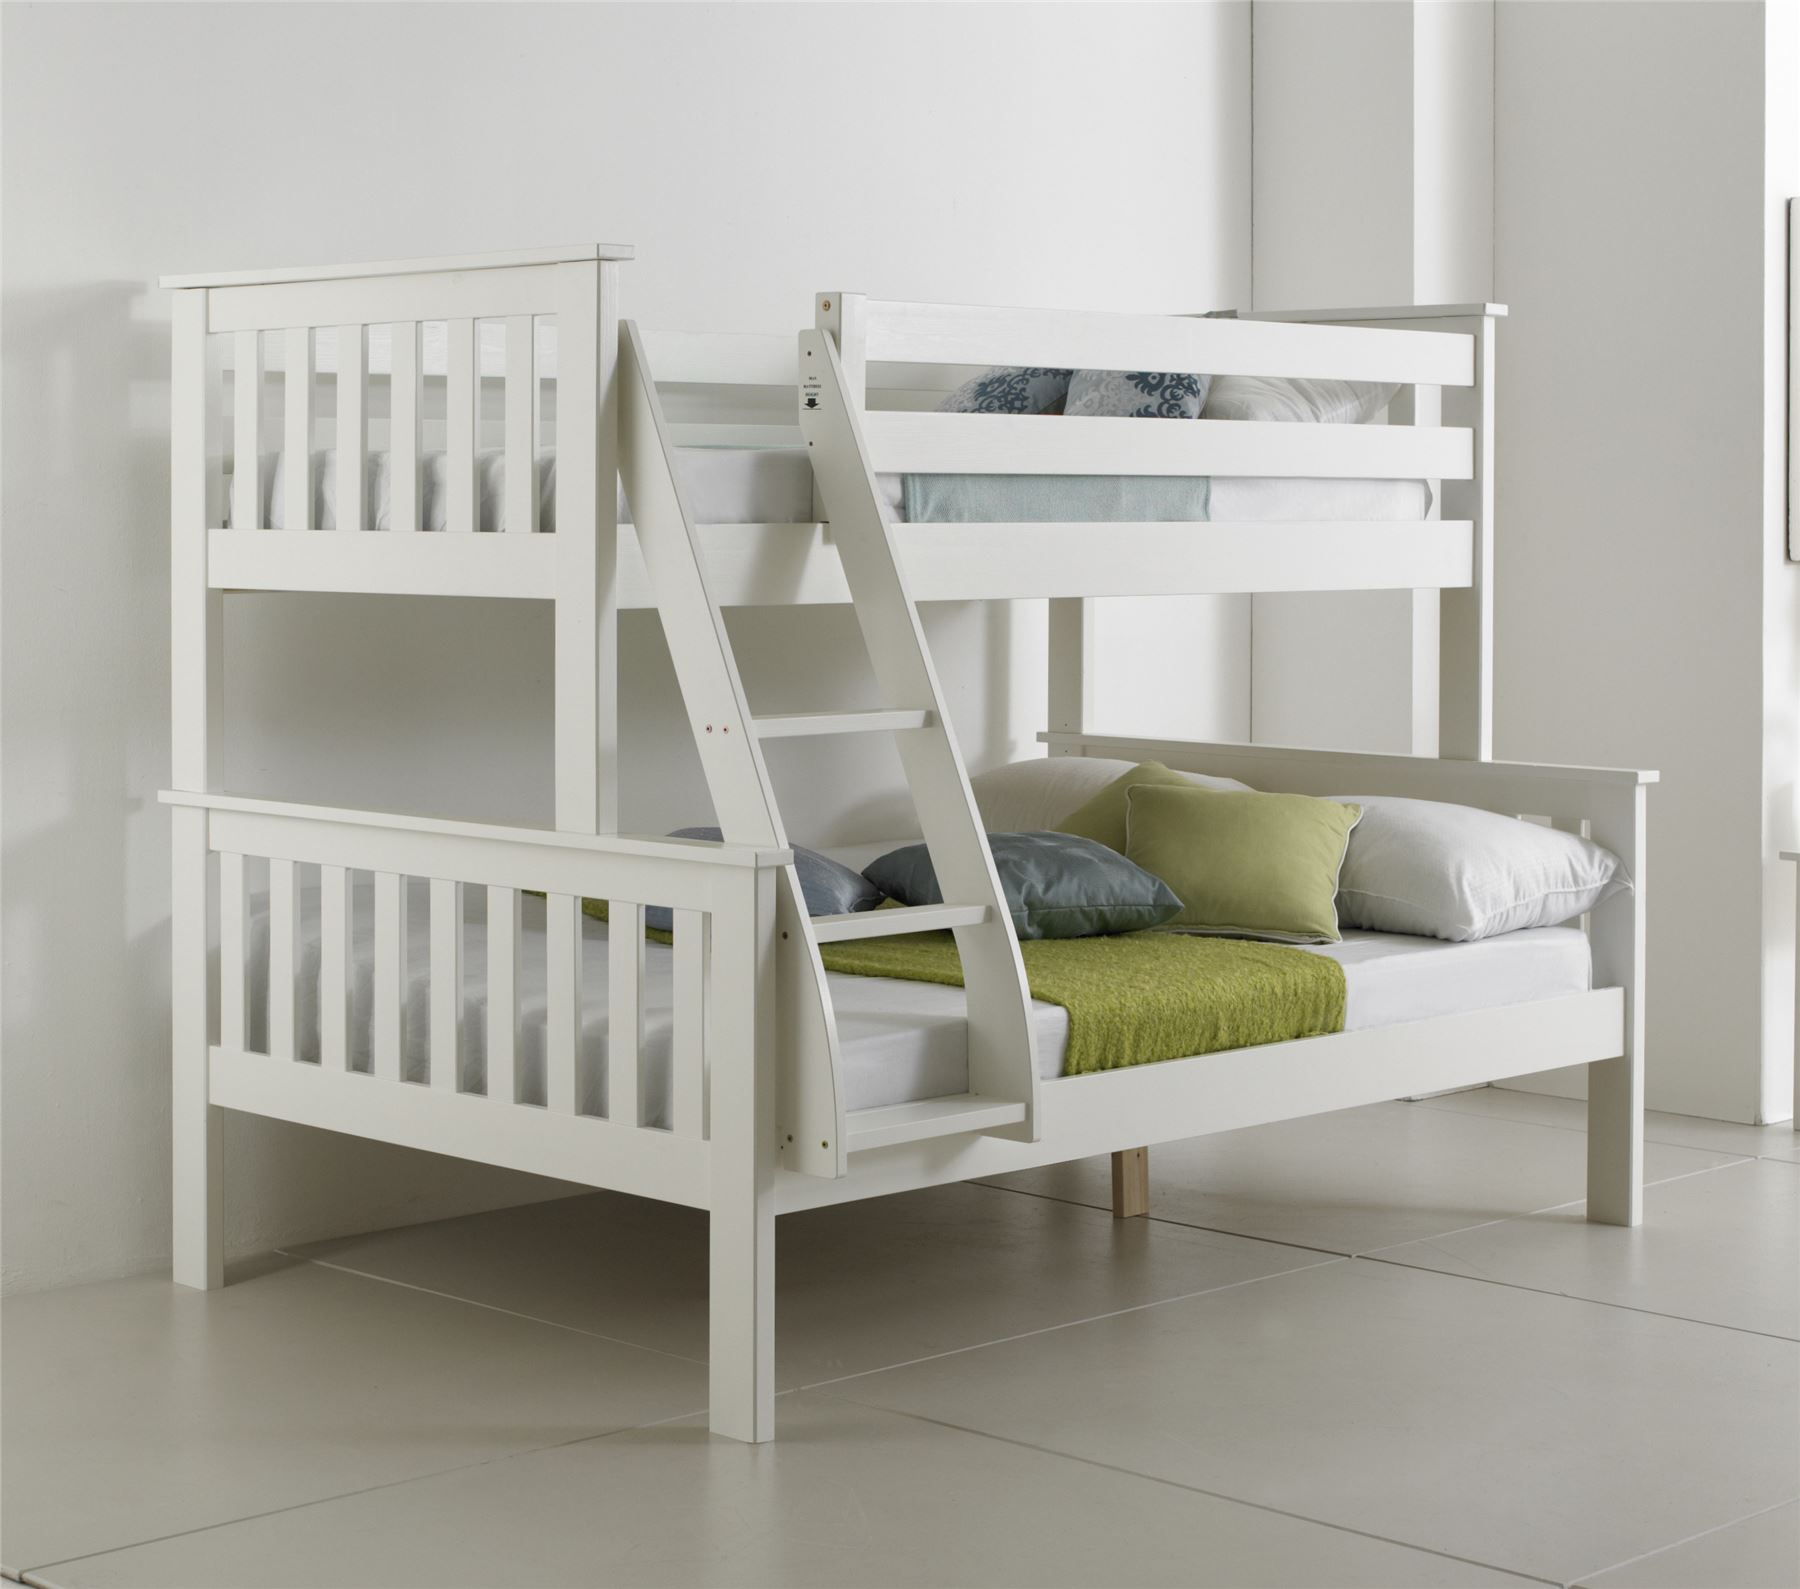 White Wooden Bunk Beds Bluemoon Beds 4ft Atlantis Triple Sleeper Bunk Bed Solid